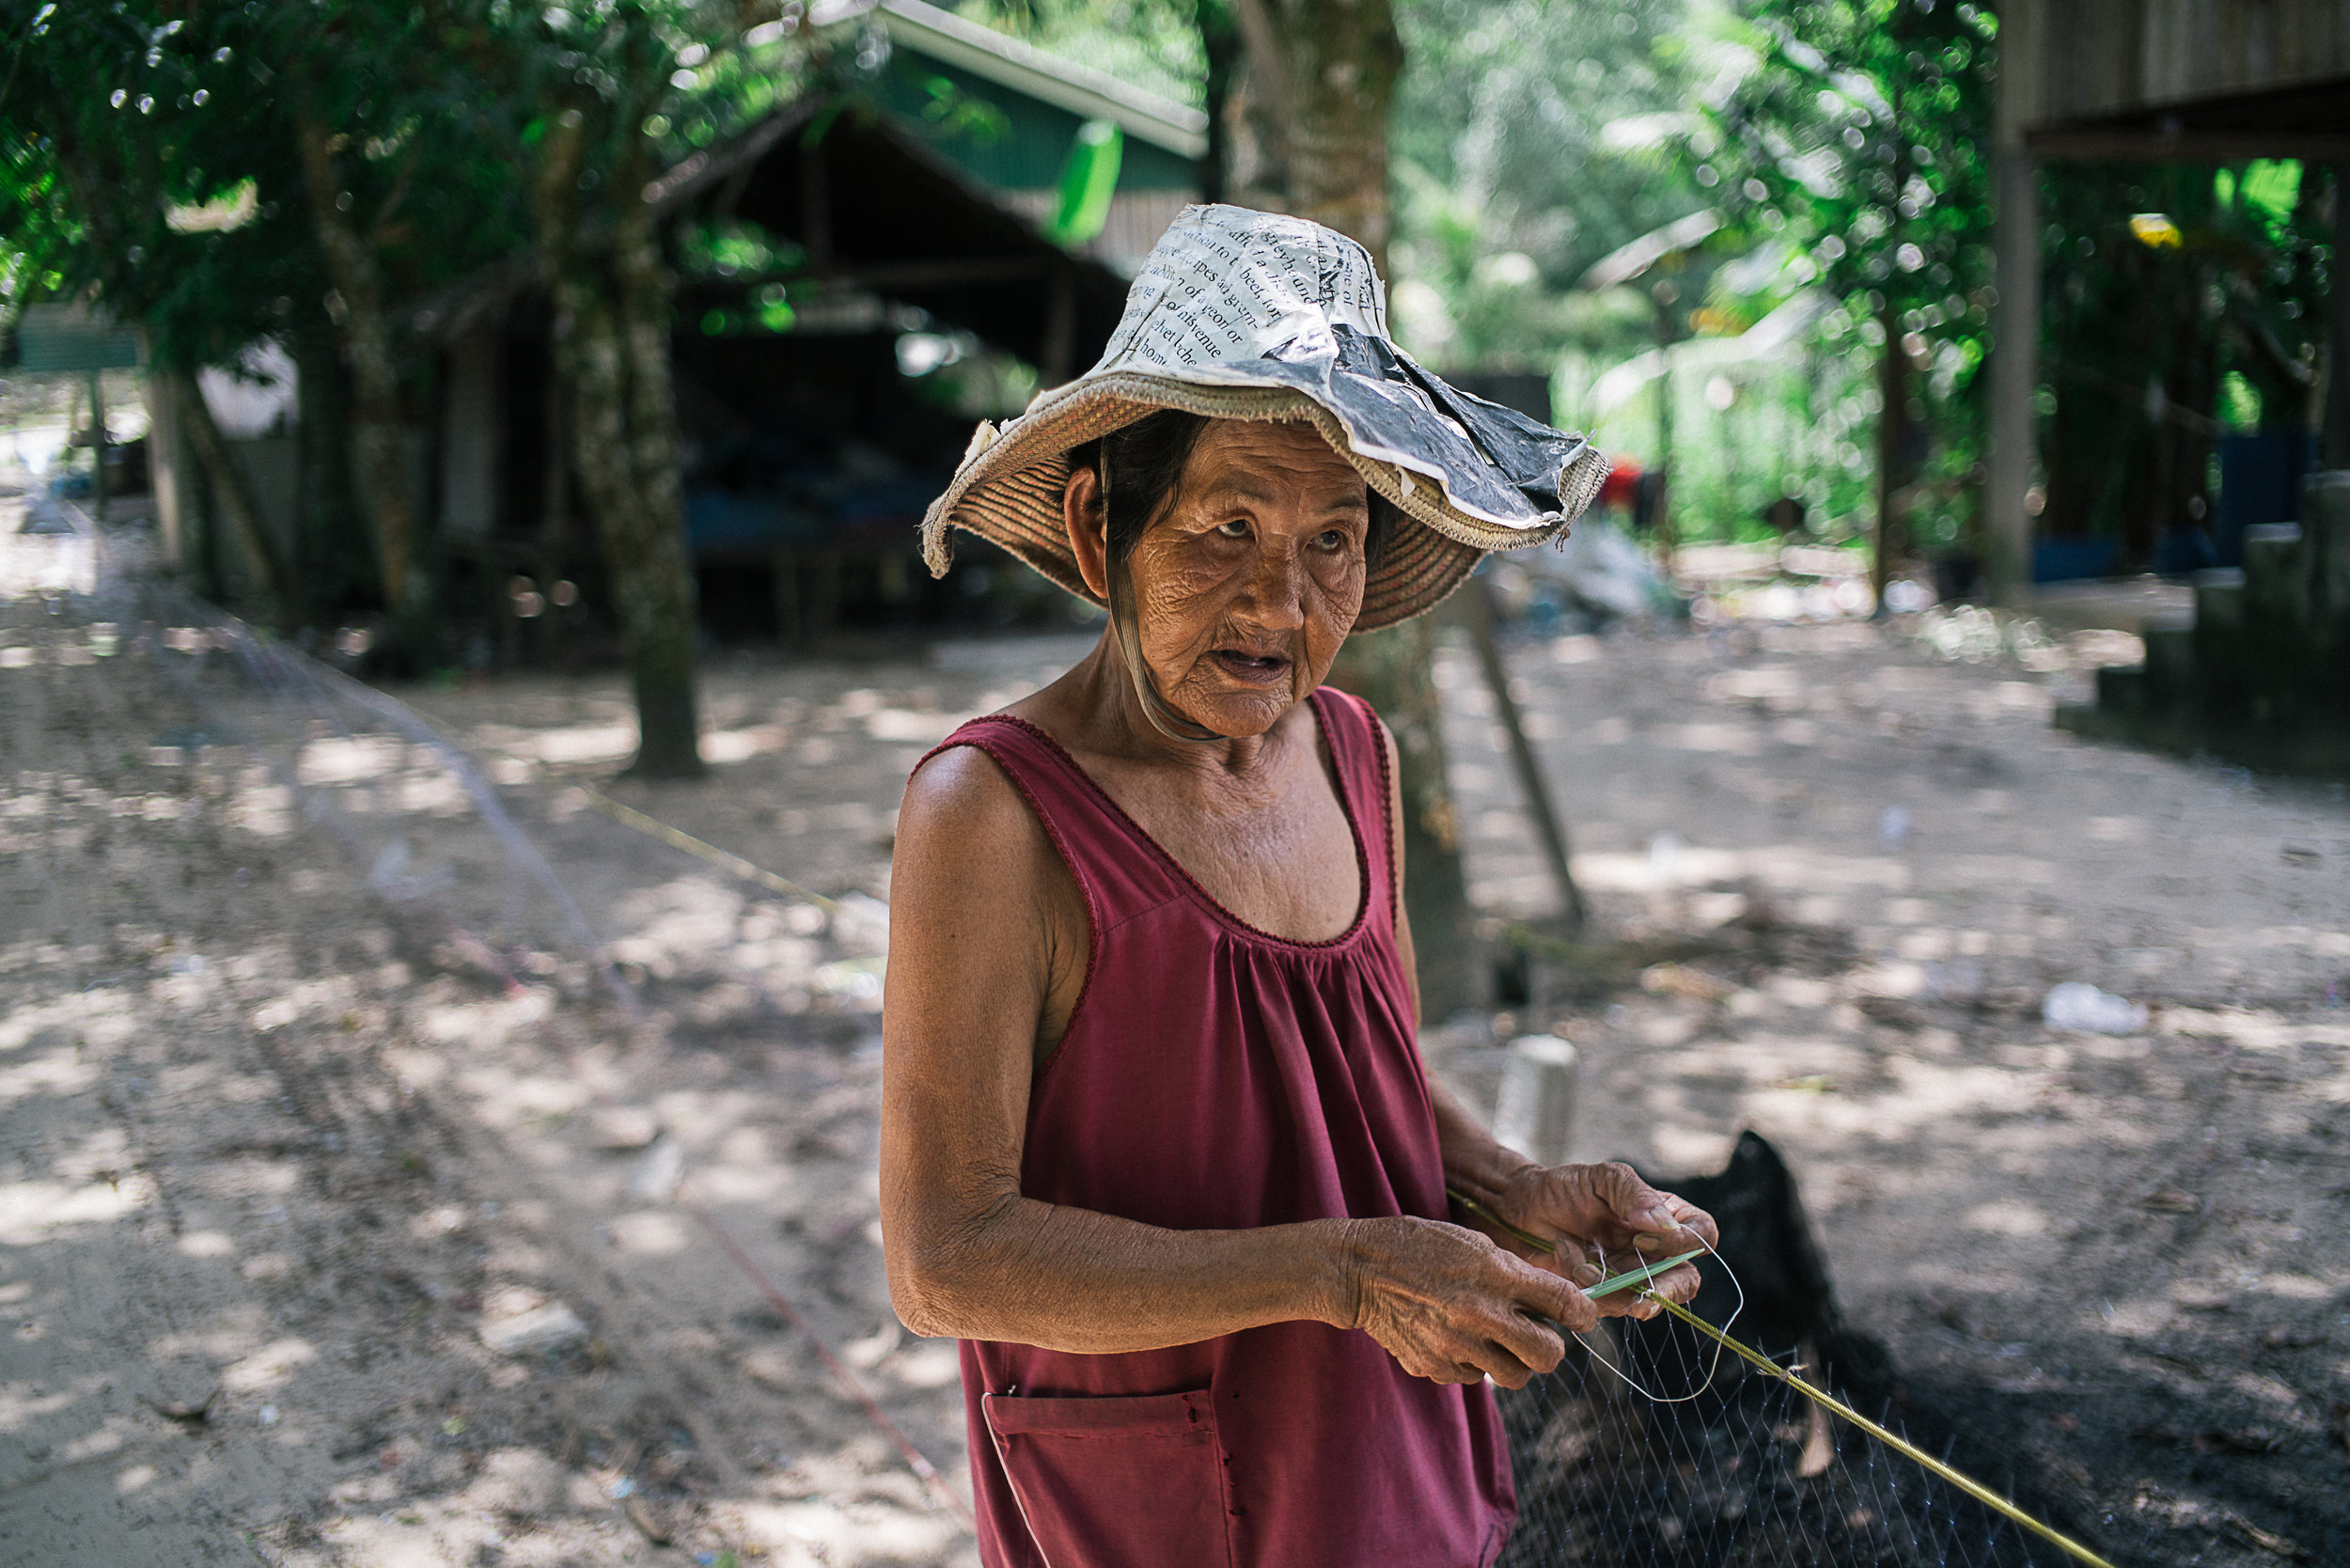 When Chao Sok Hom, 72, realised that her income was directly affected by the sand dredging ships, she joined many others to leave their home and work at the border cities across in Thailand.